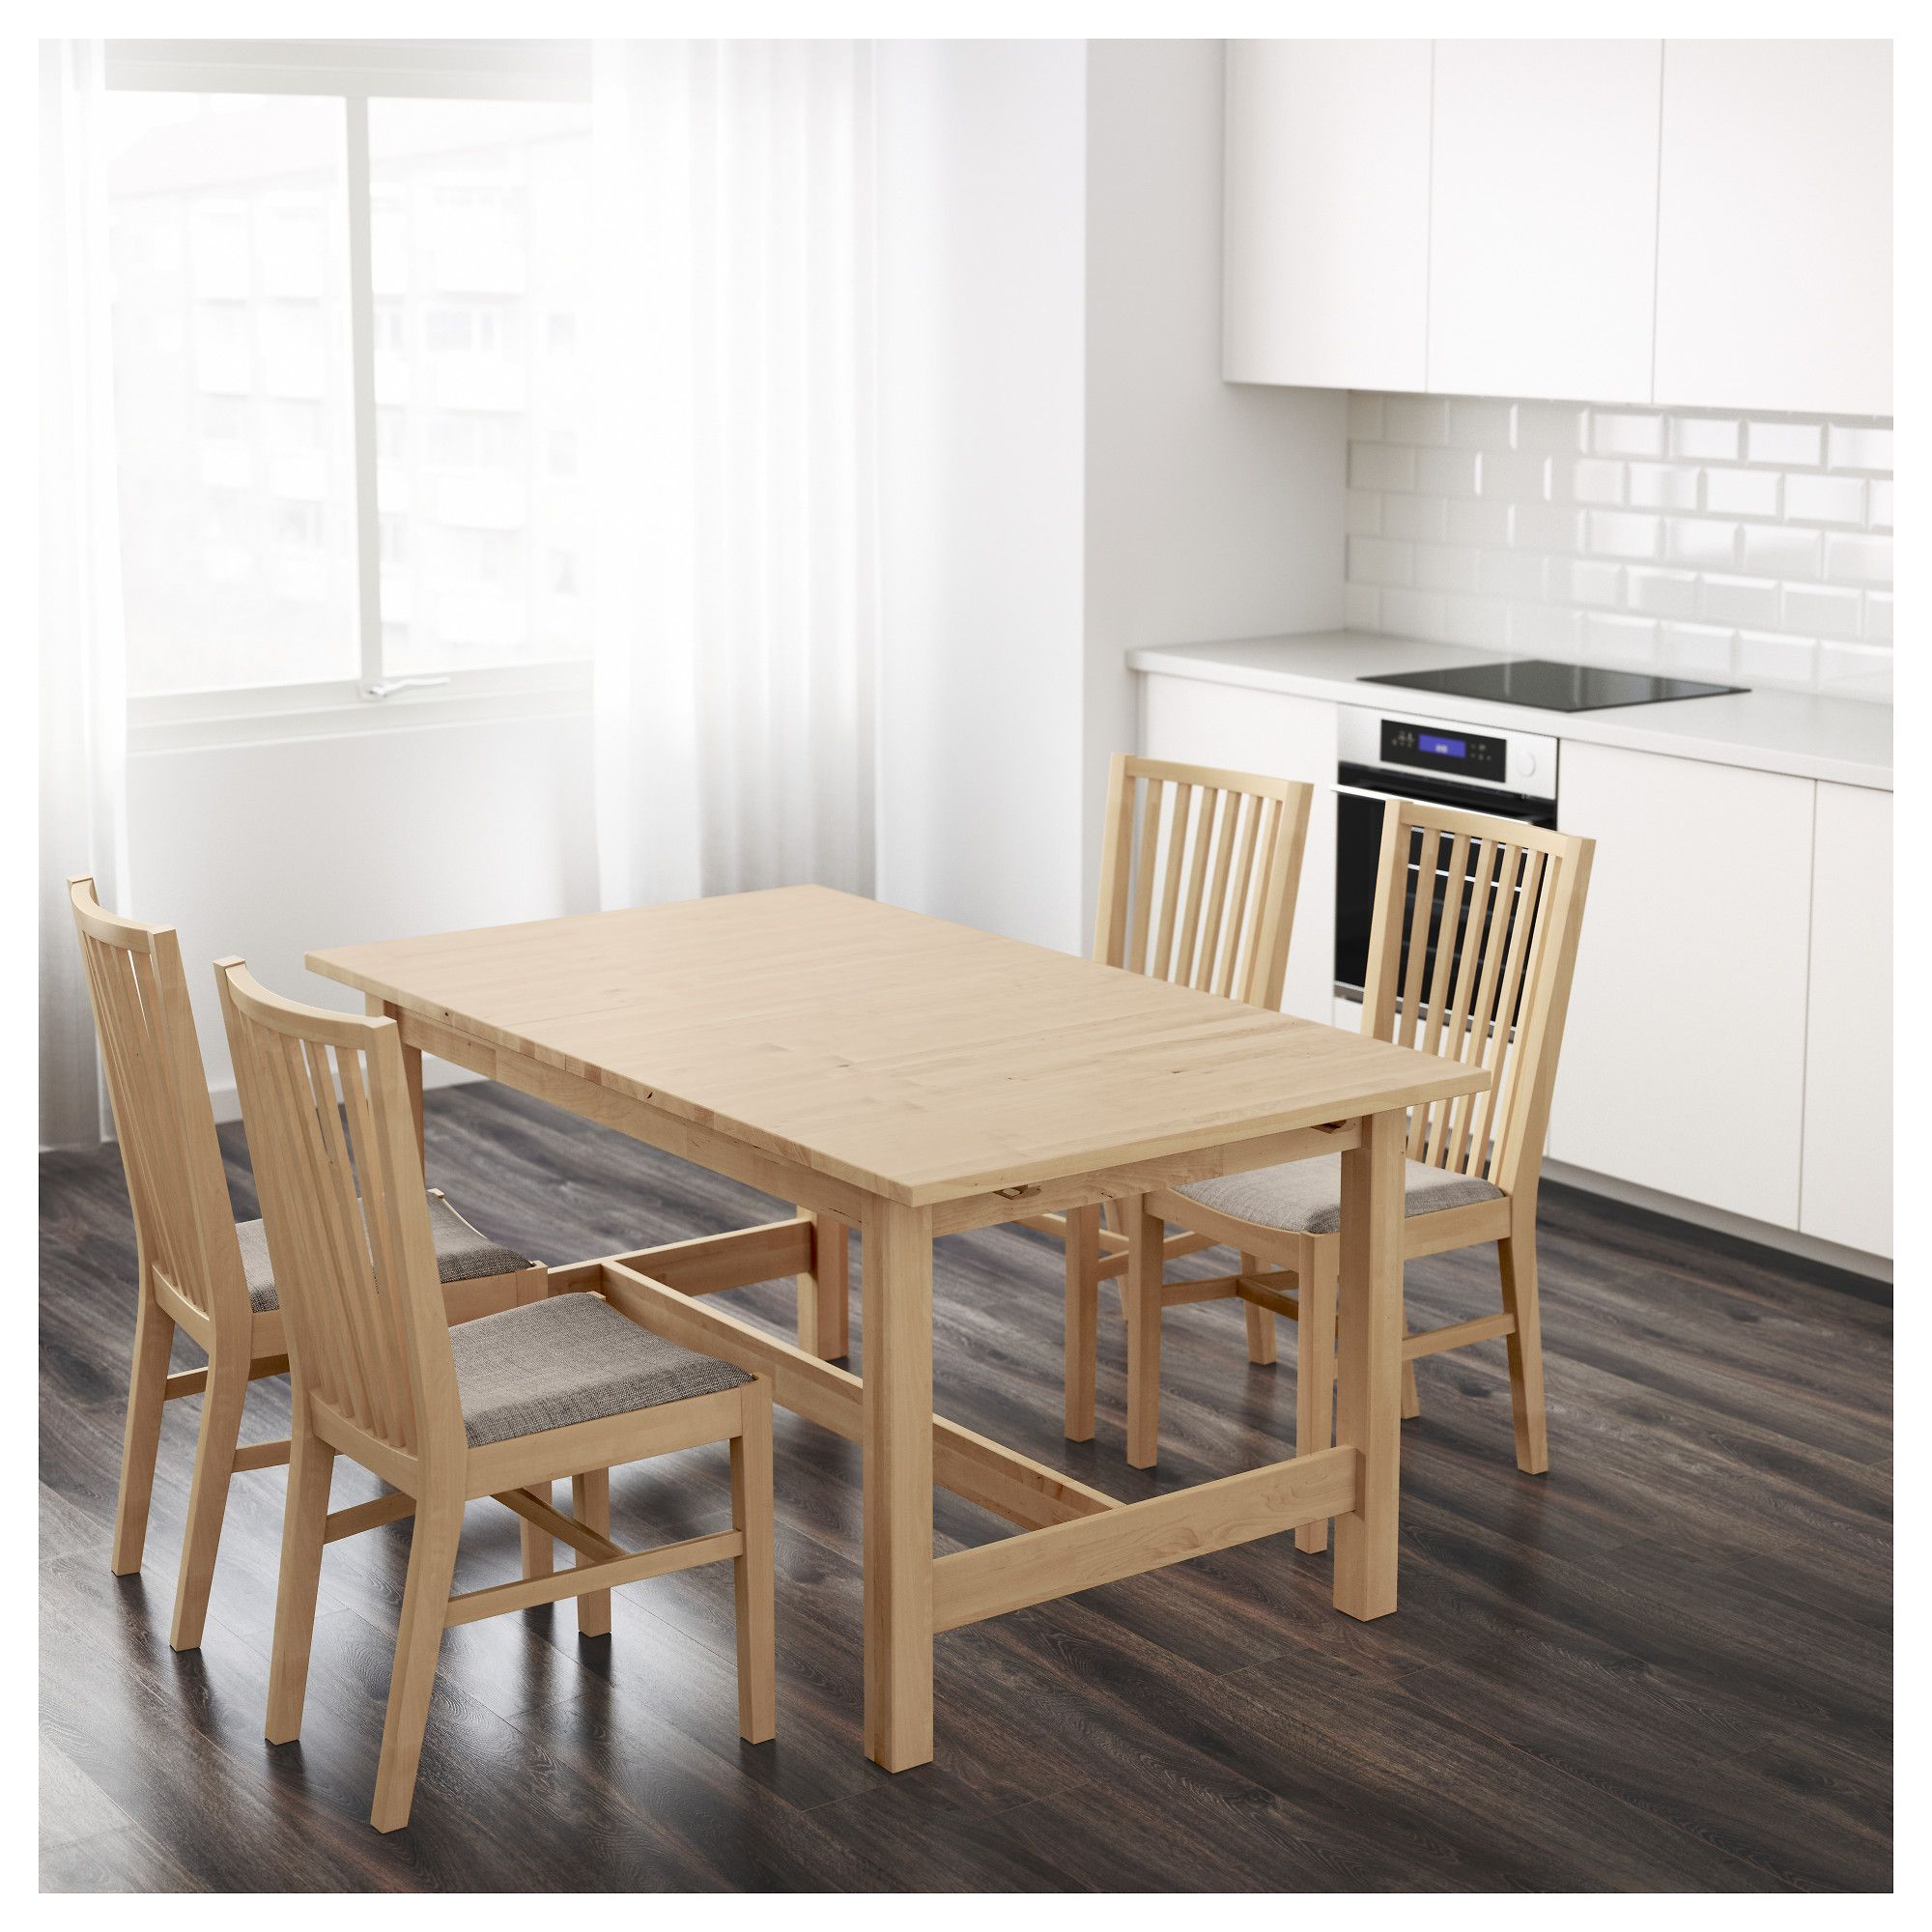 IKEA NORDEN extendable table 1 extension leaf